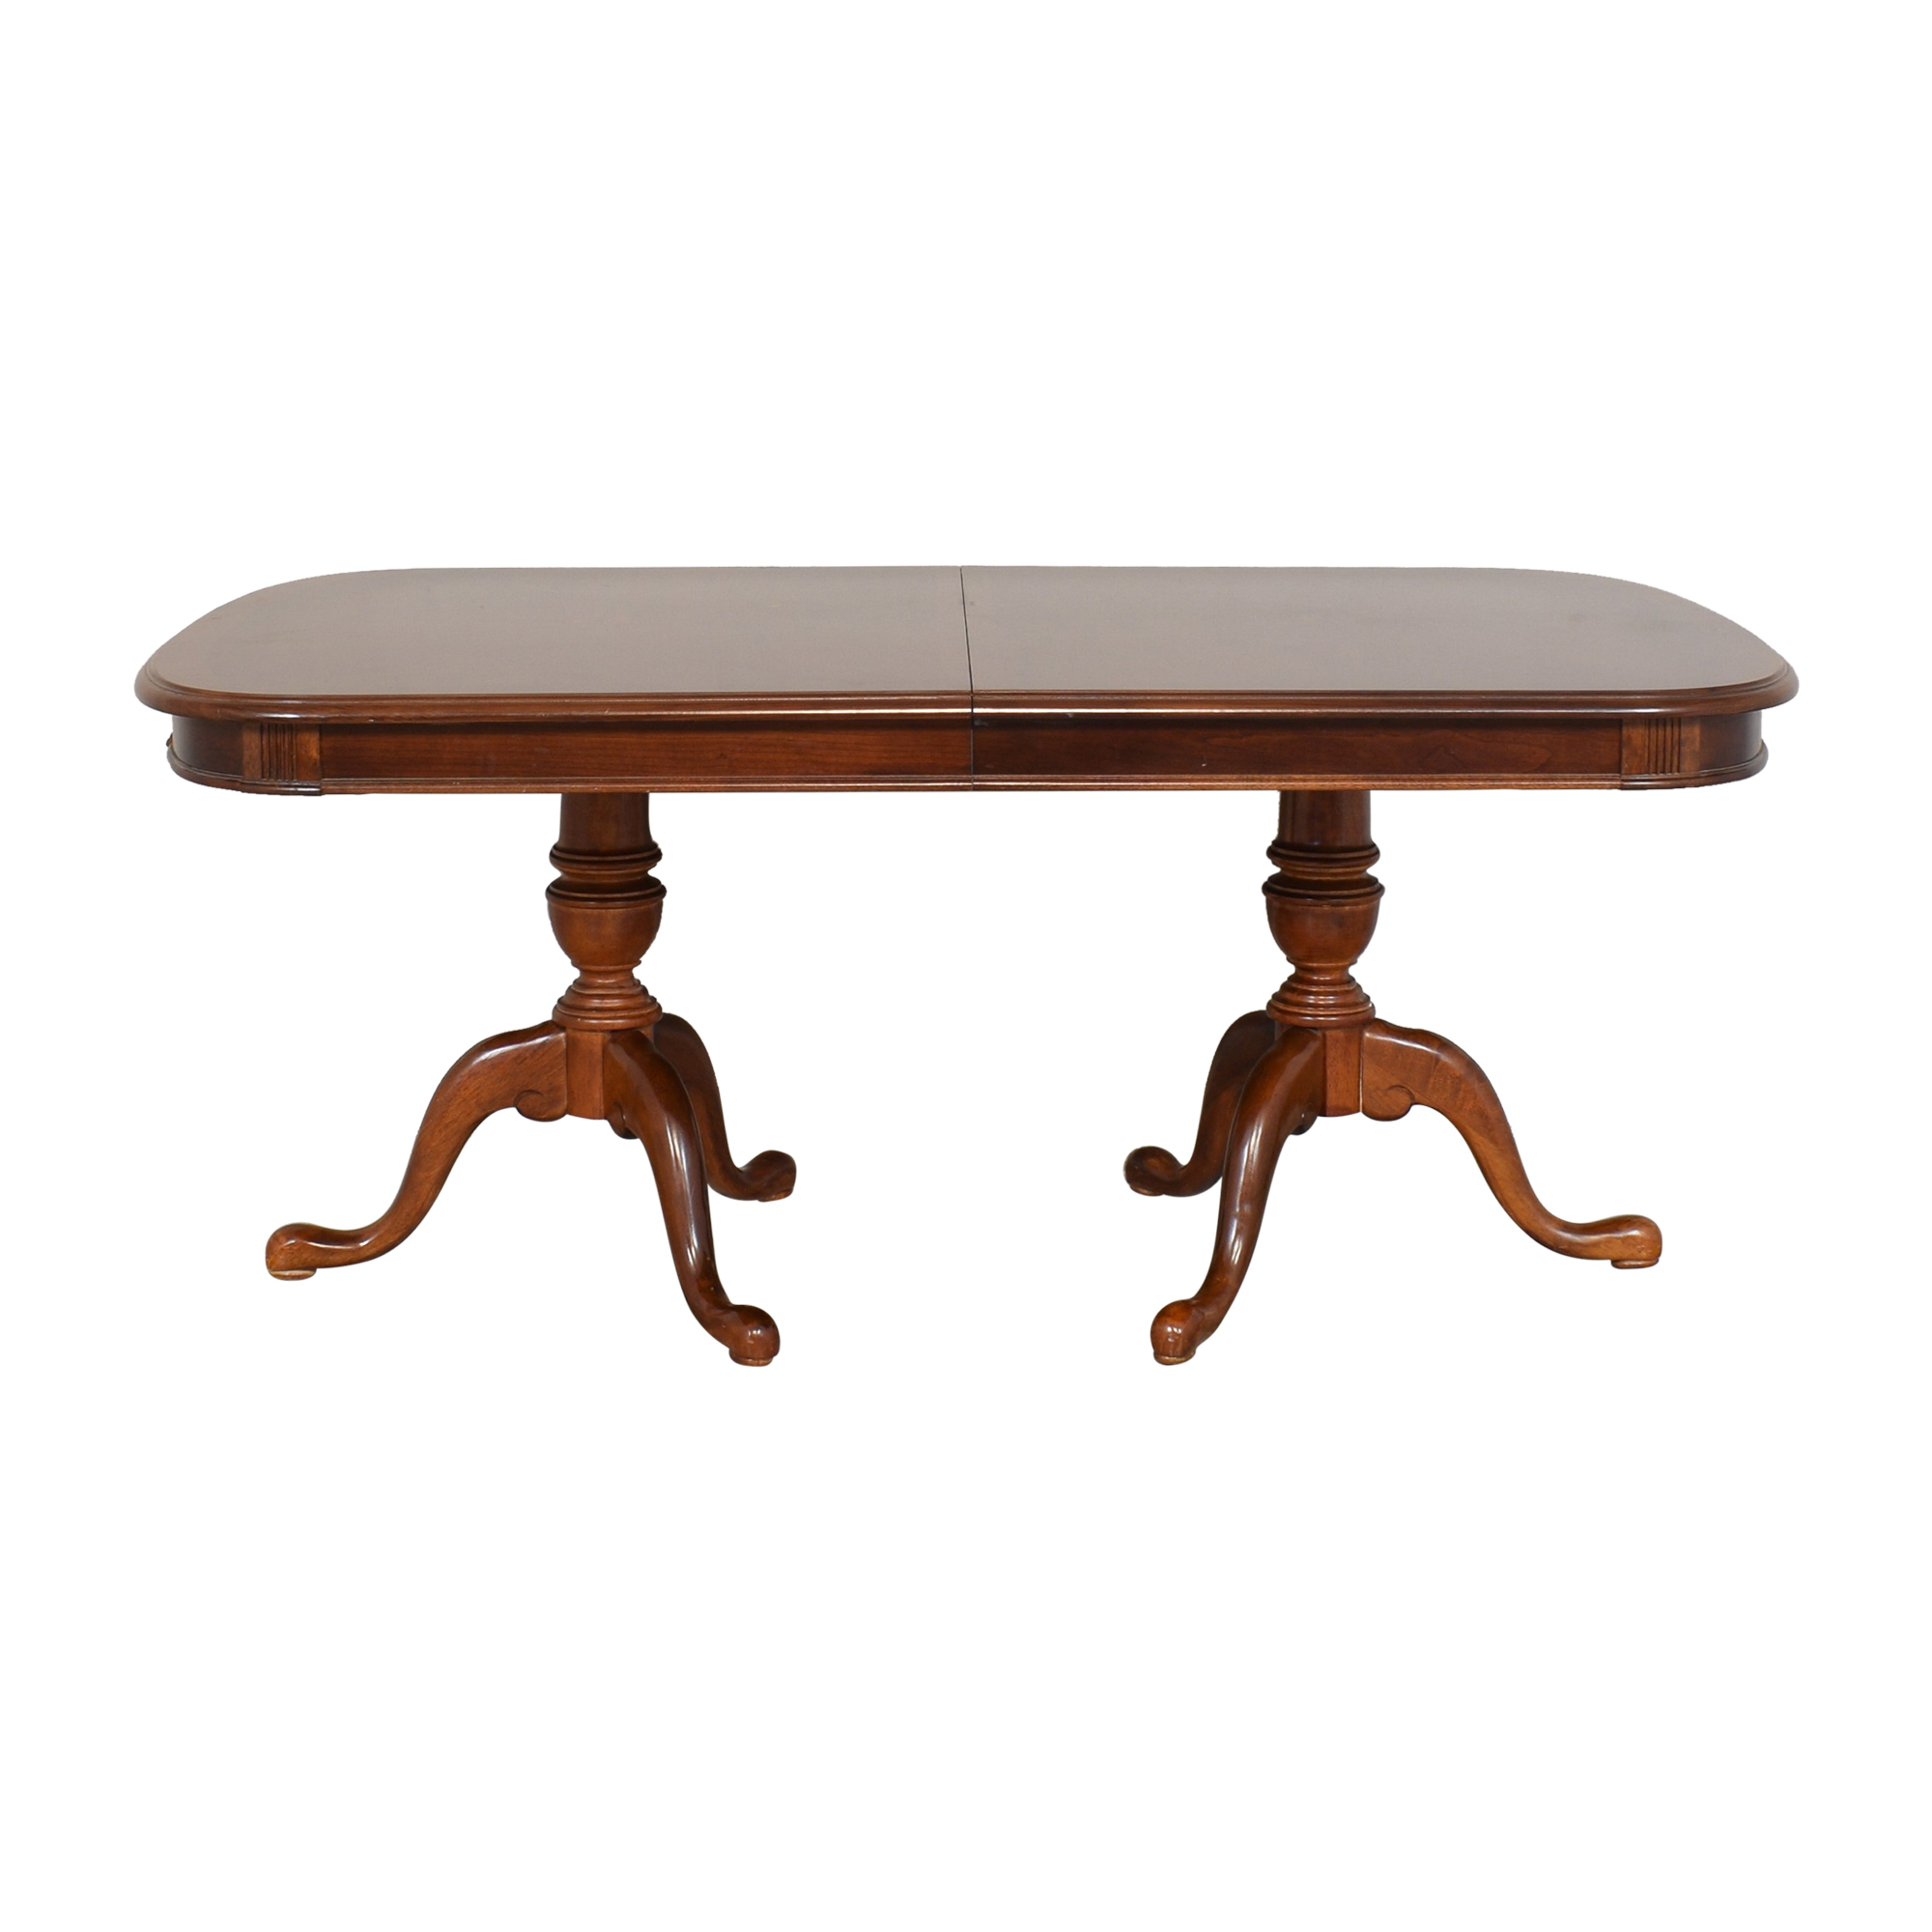 Universal Furniture Universal Furniture Double Pedestal Extending Dining Table nj